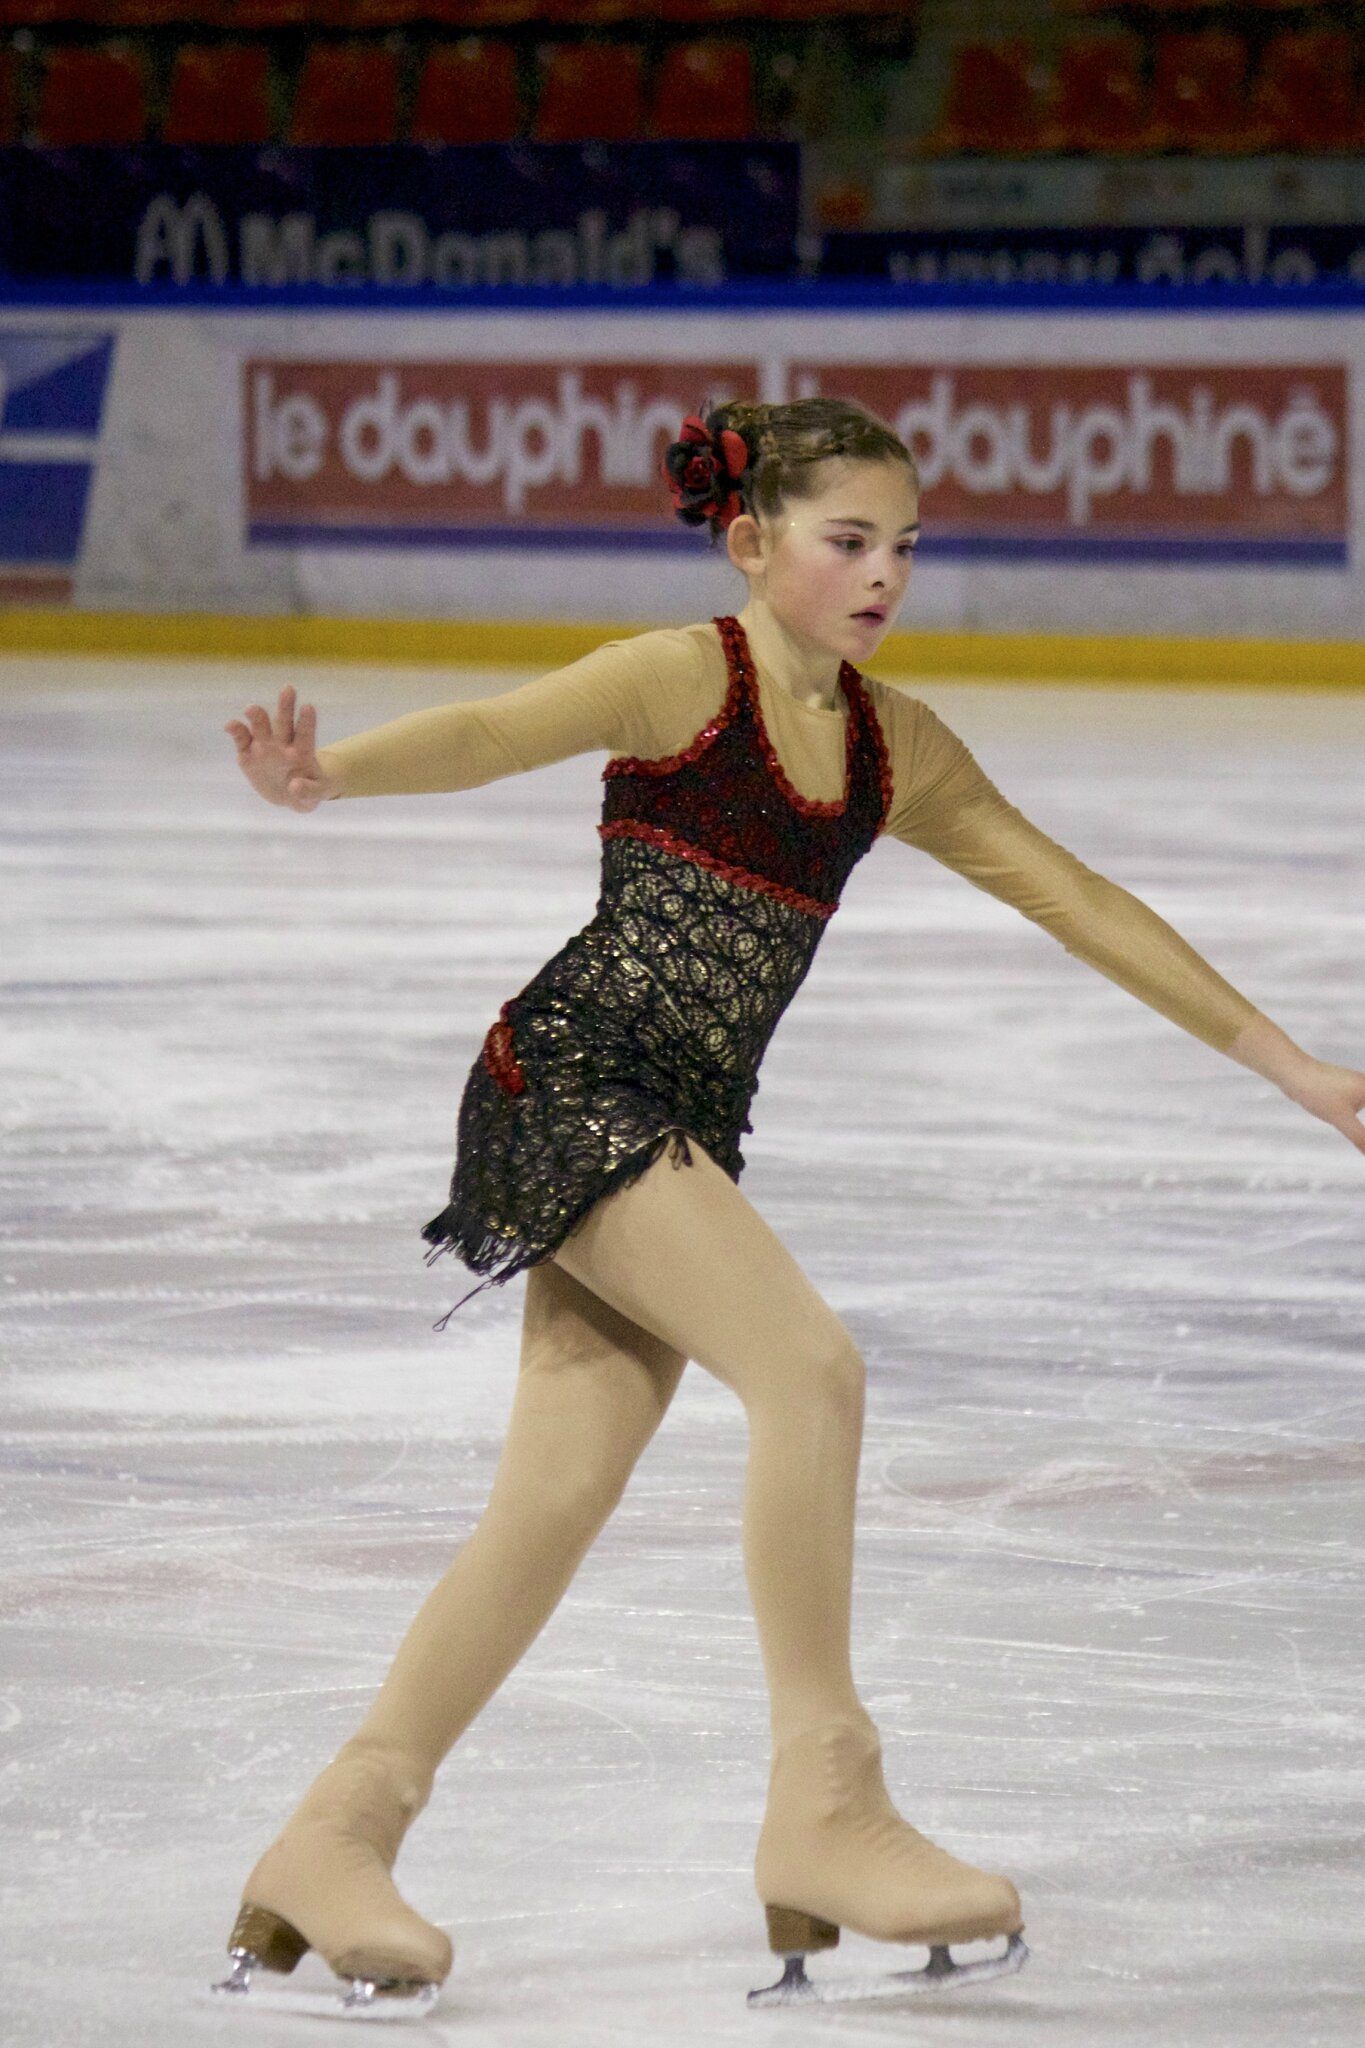 compet Patin Grenoble - 202